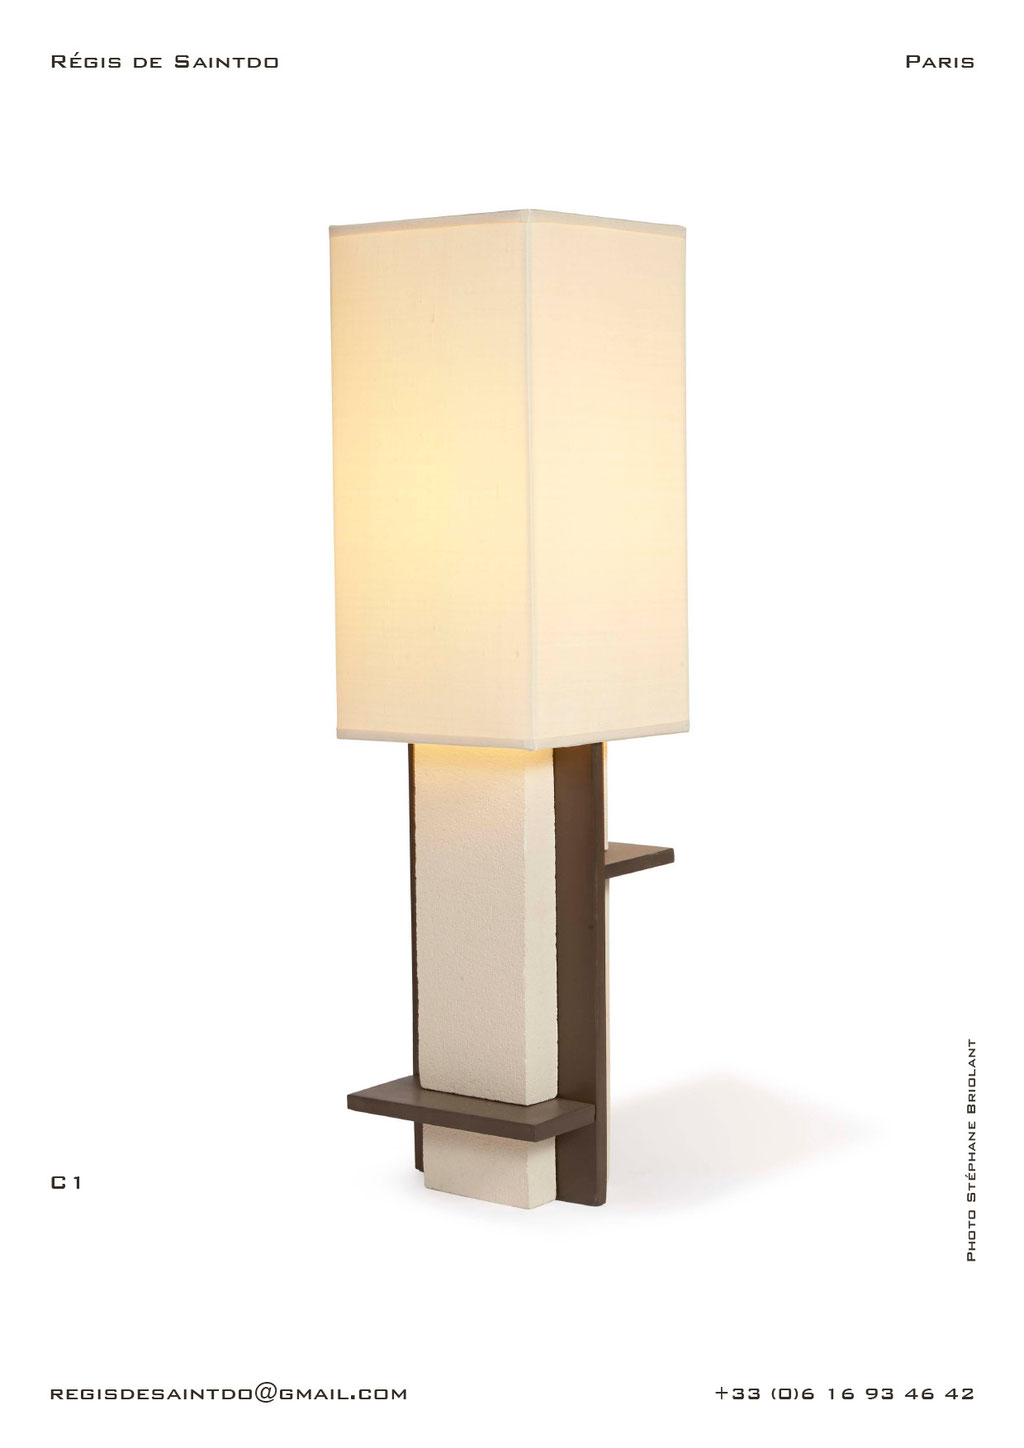 Lampe-C1-céramique-blanche-brute-brune-polie-faite-main-unique